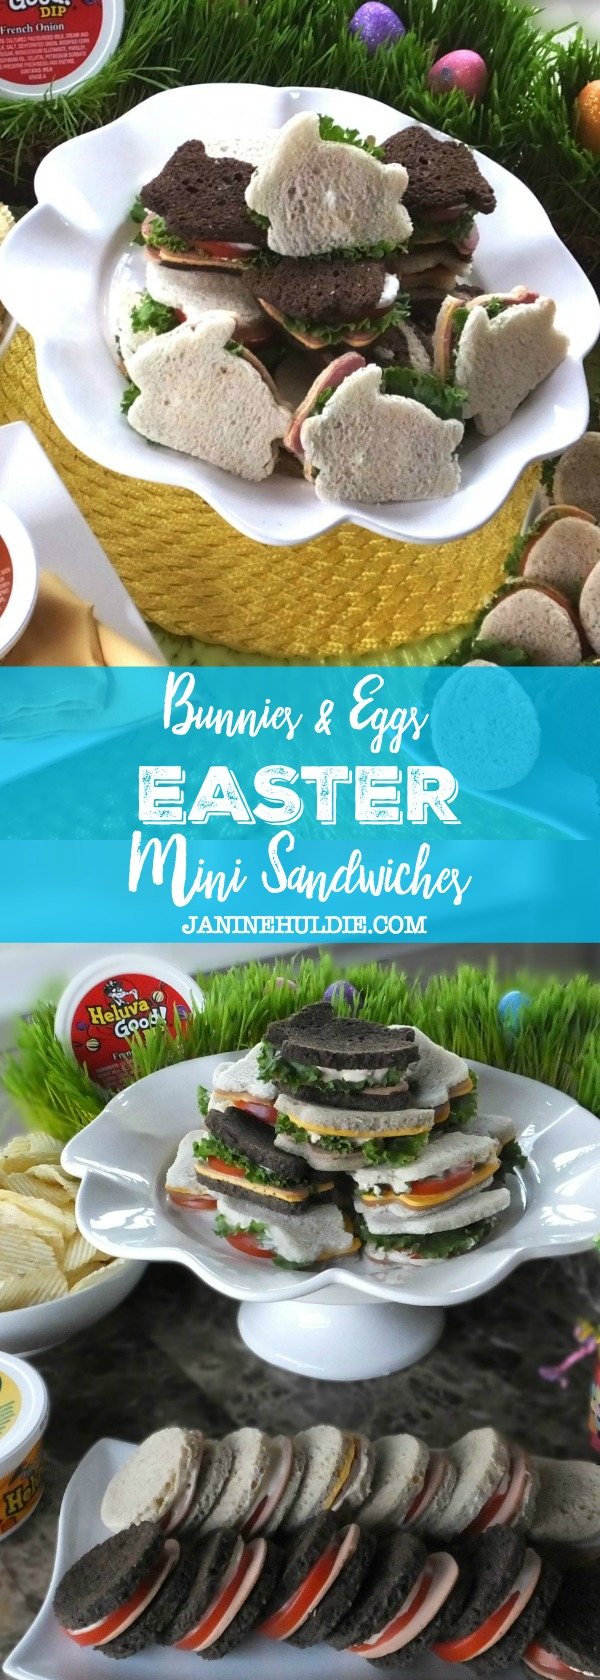 Bunnies and Eggs Easter Mini Sandwiches